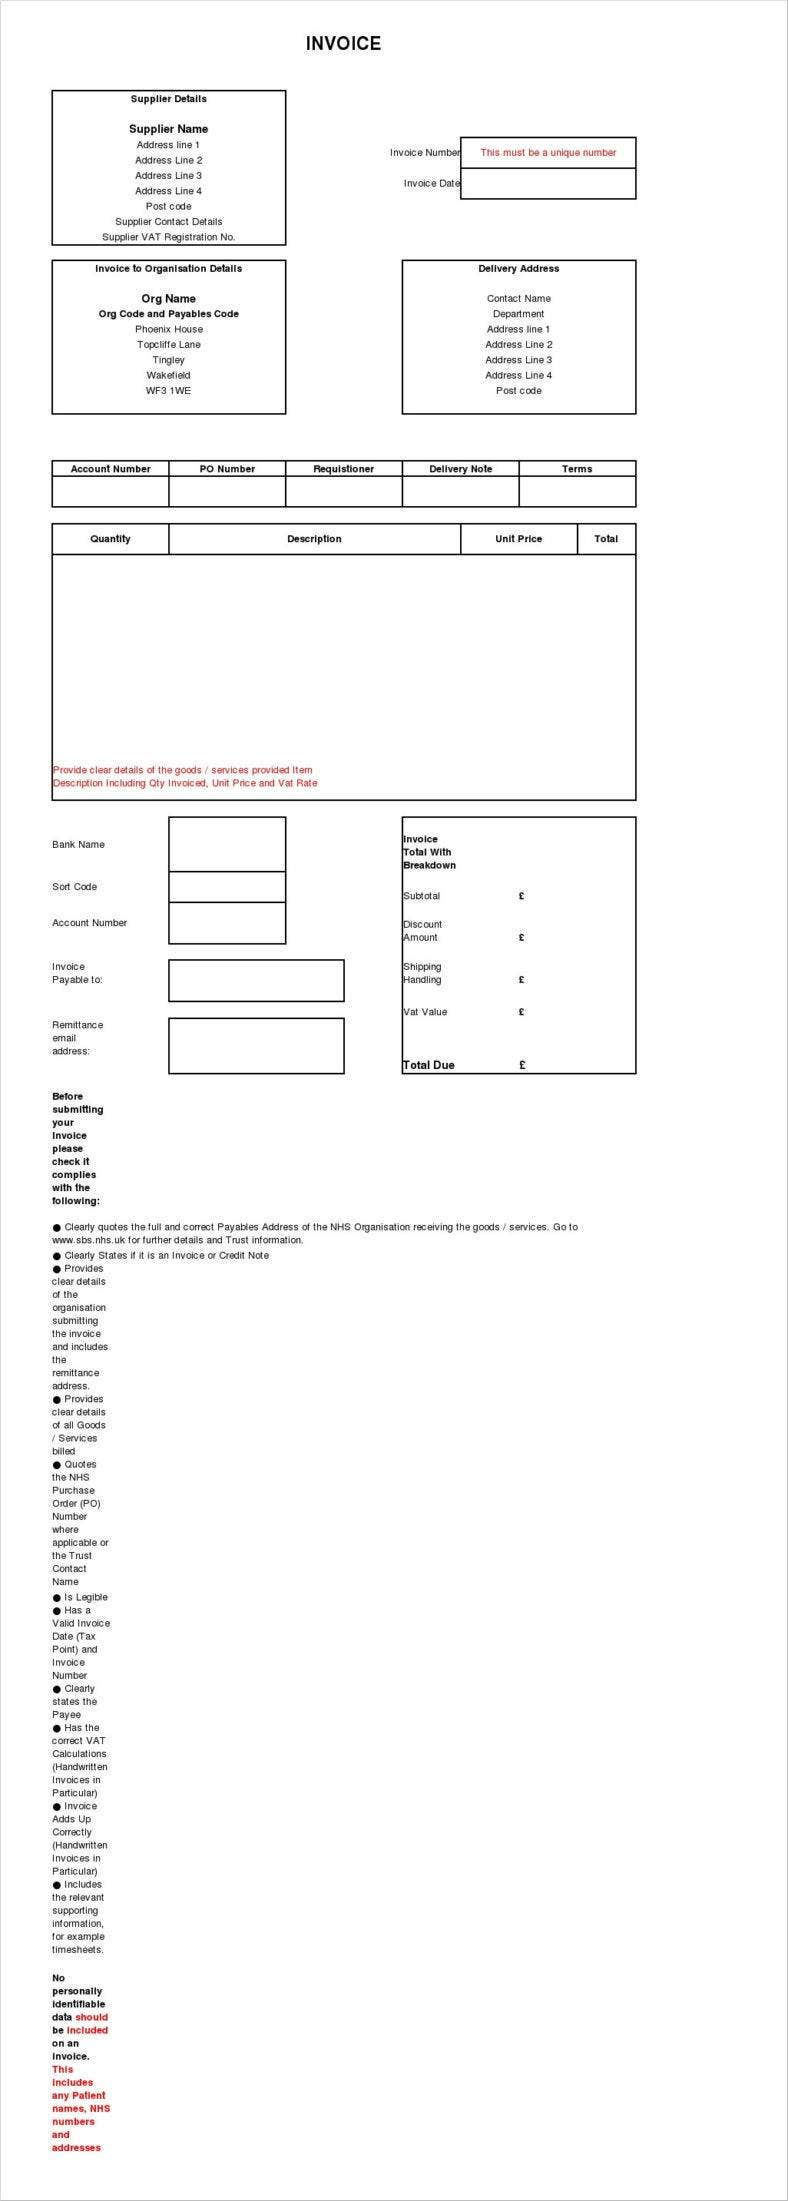 invoice template for delivery order excel form1 788x2201